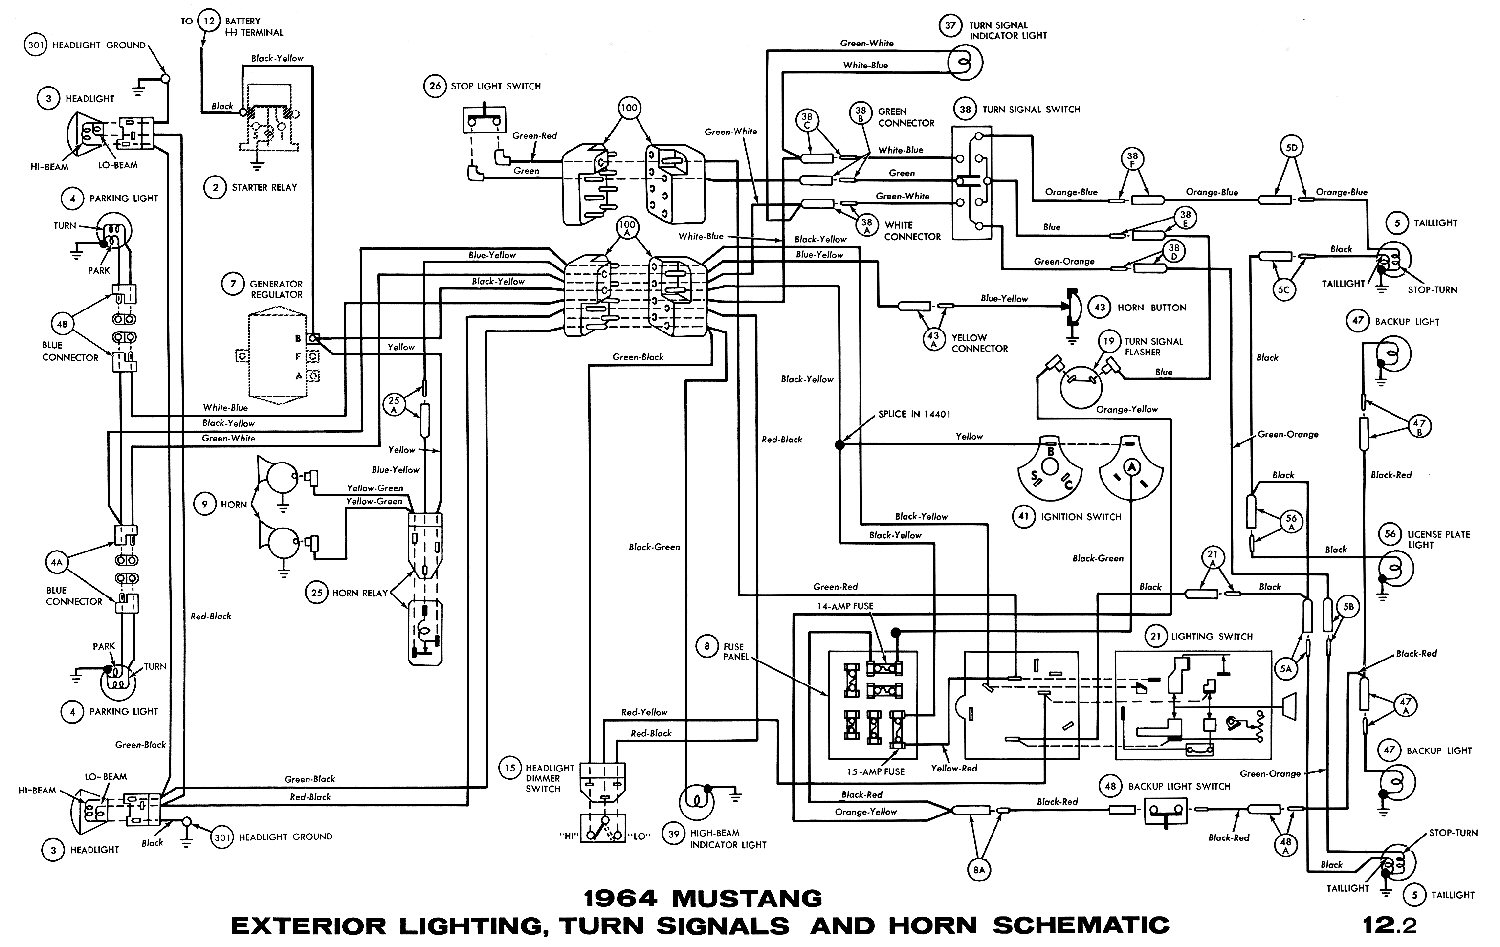 1964i 1969 mustang wiring diagram 1969 ranchero wiring diagram \u2022 wiring 66 mustang ignition wiring diagram at soozxer.org